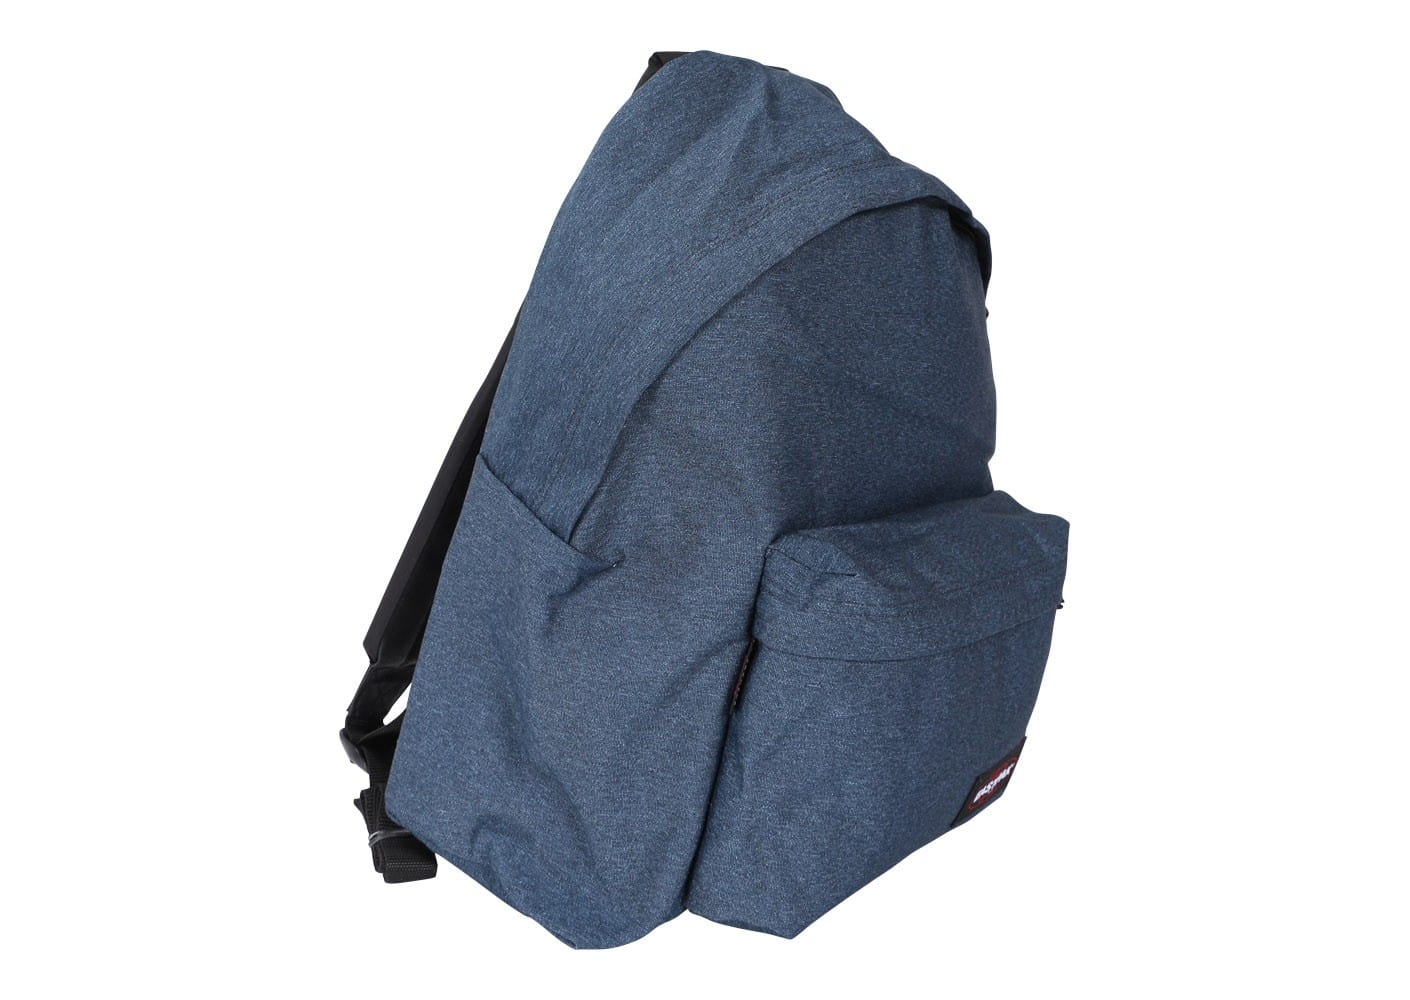 eastpak sac dos padded pak 39 r bleu jean sacs sacoches chausport. Black Bedroom Furniture Sets. Home Design Ideas